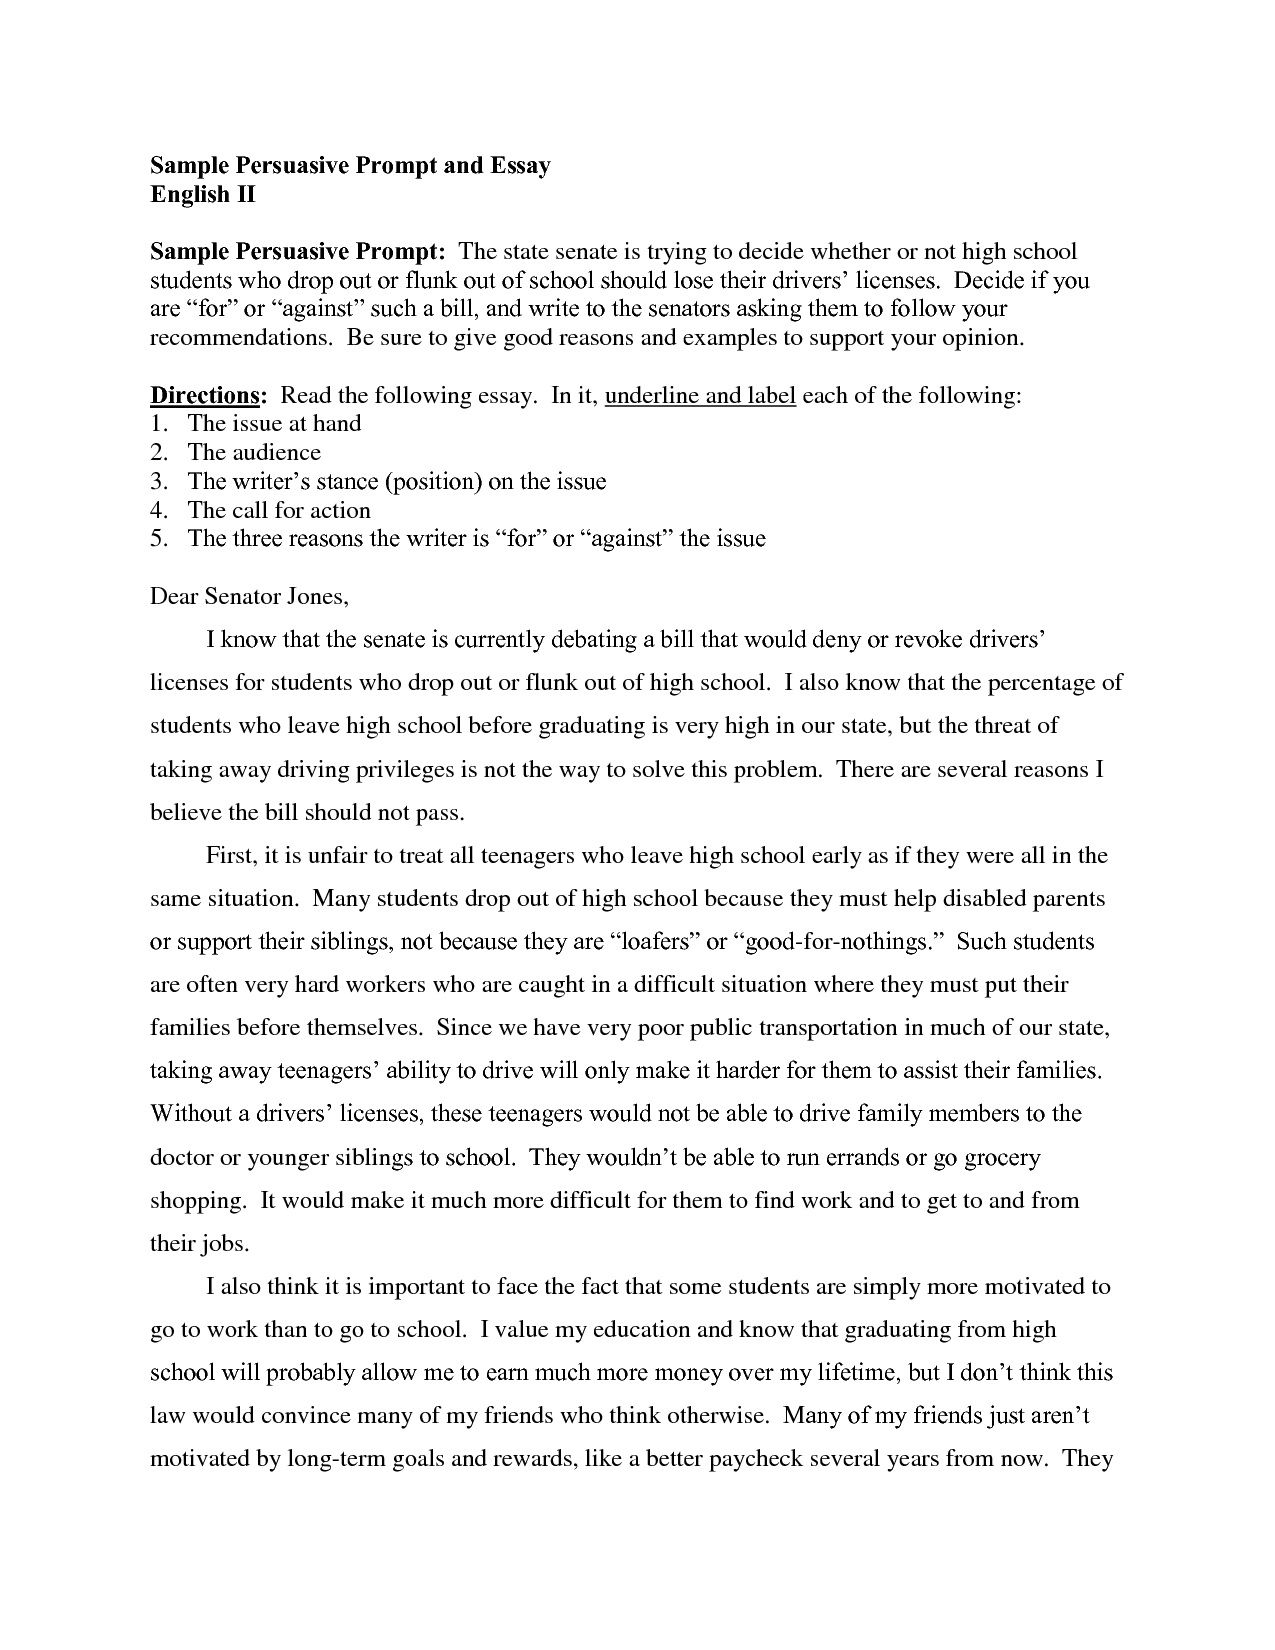 Buy Custom Essay Papers  Healthcare Essay Topics also Sample Apa Essay Paper Samples Of Persuasive Essays For High School Students  Essay On High School Experience